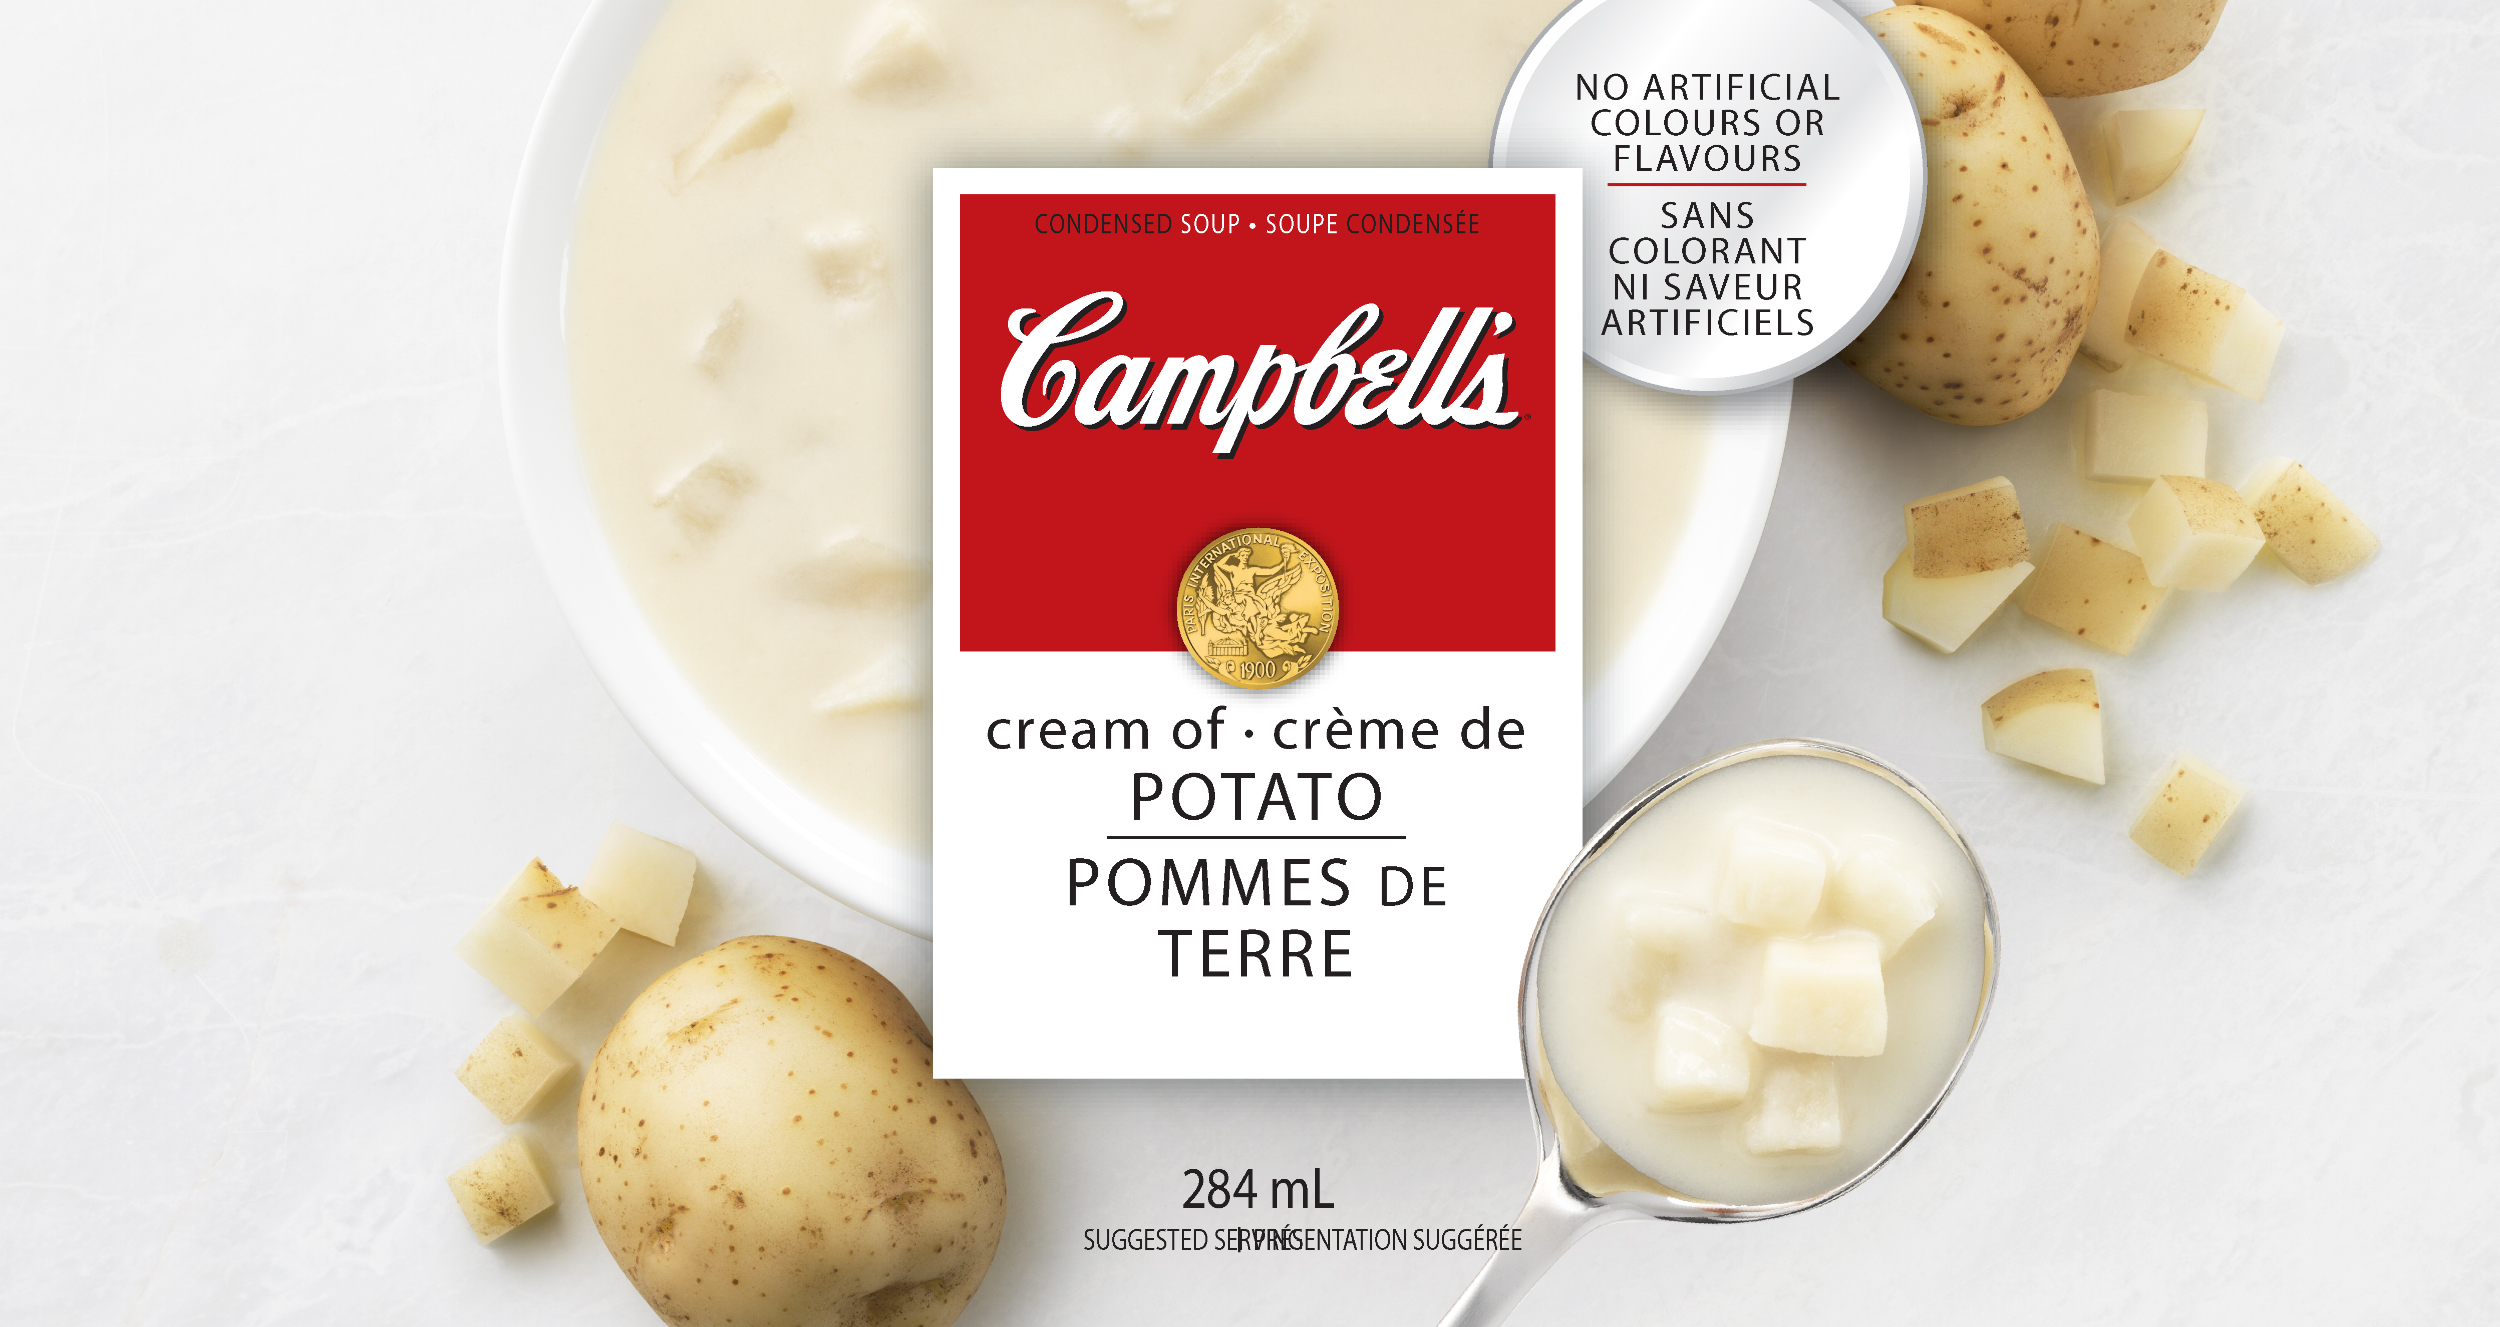 15885 KY R18 Campbell's CDN Condensed Eating_Crm of Potato2.jpg